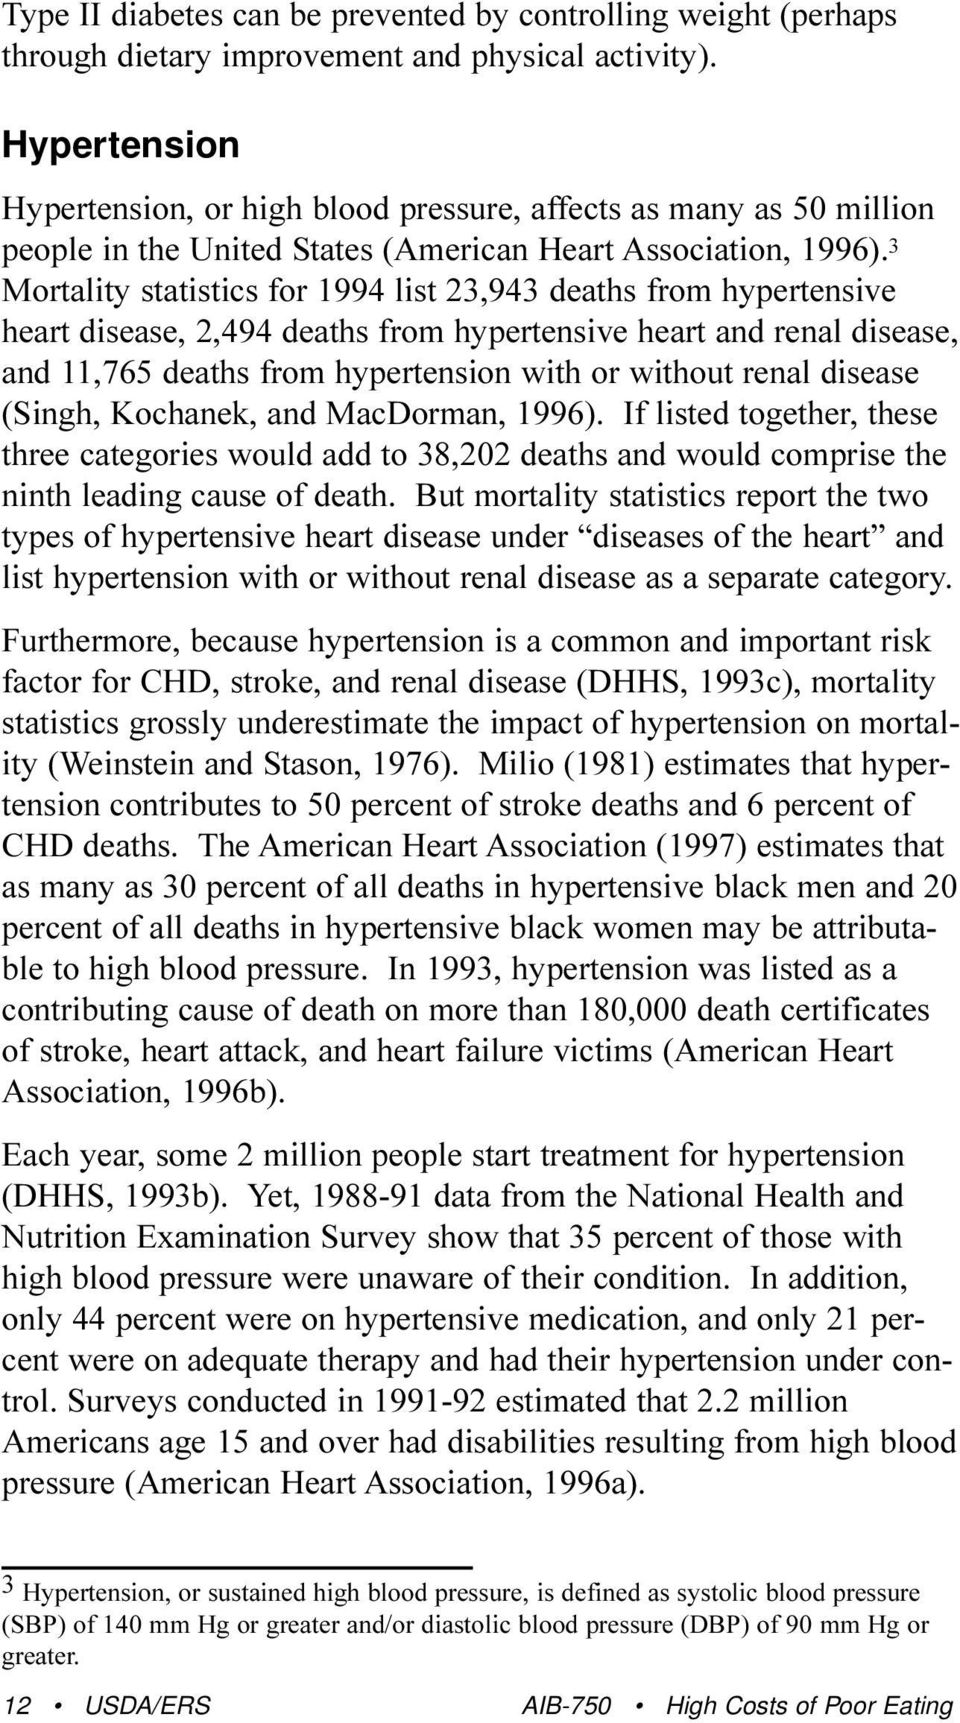 3 Mortality statistics for 1994 list 23,943 deaths from hypertensive heart disease, 2,494 deaths from hypertensive heart and renal disease, and 11,765 deaths from hypertension with or without renal